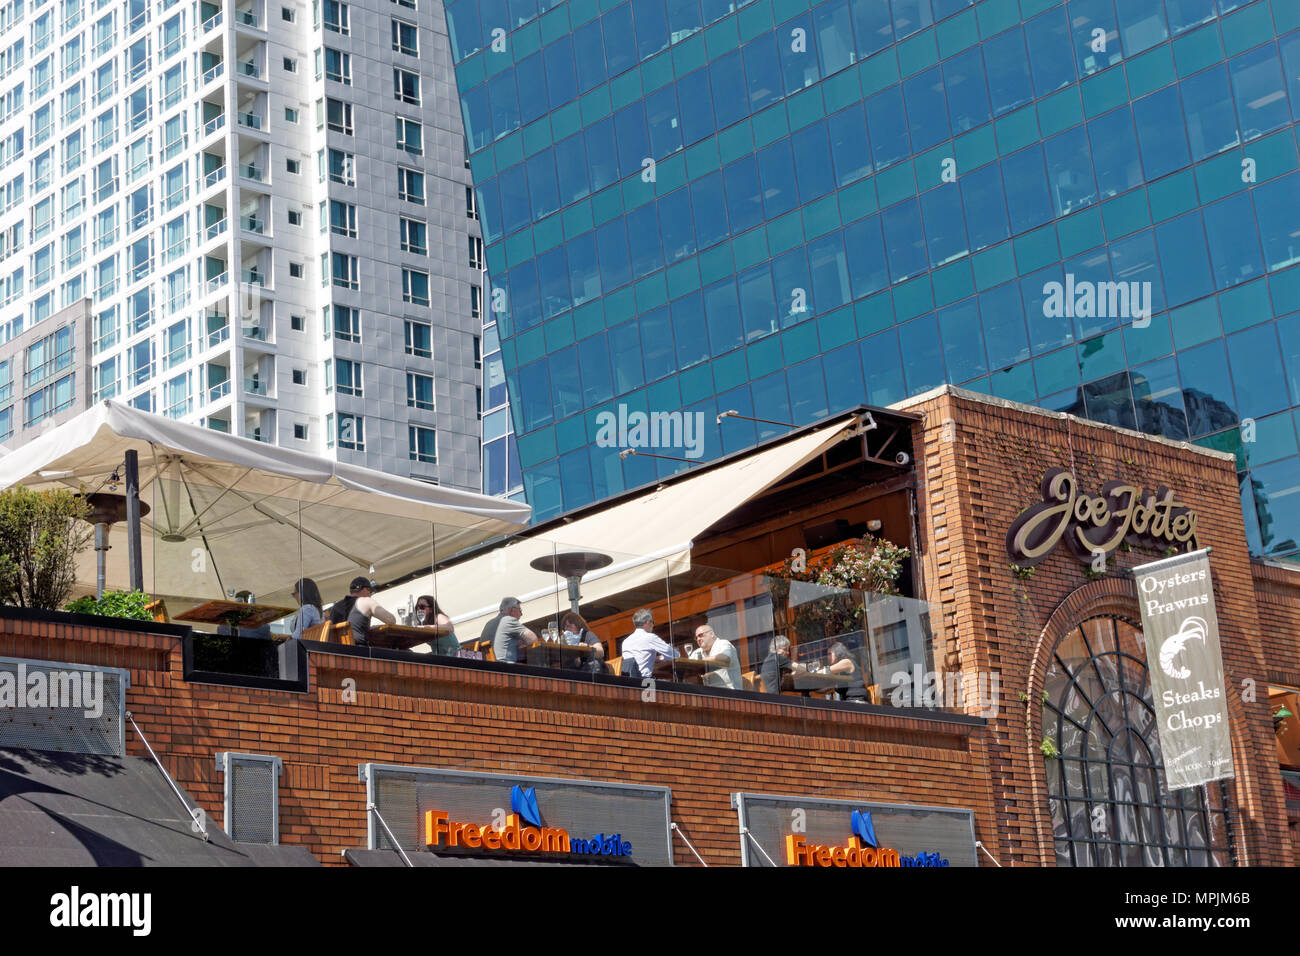 People dining on the rooftop patio of Joe Fortes steak and seafood restaurant on Thurlow Street in downtown  Vancouver, BC, Canada - Stock Image